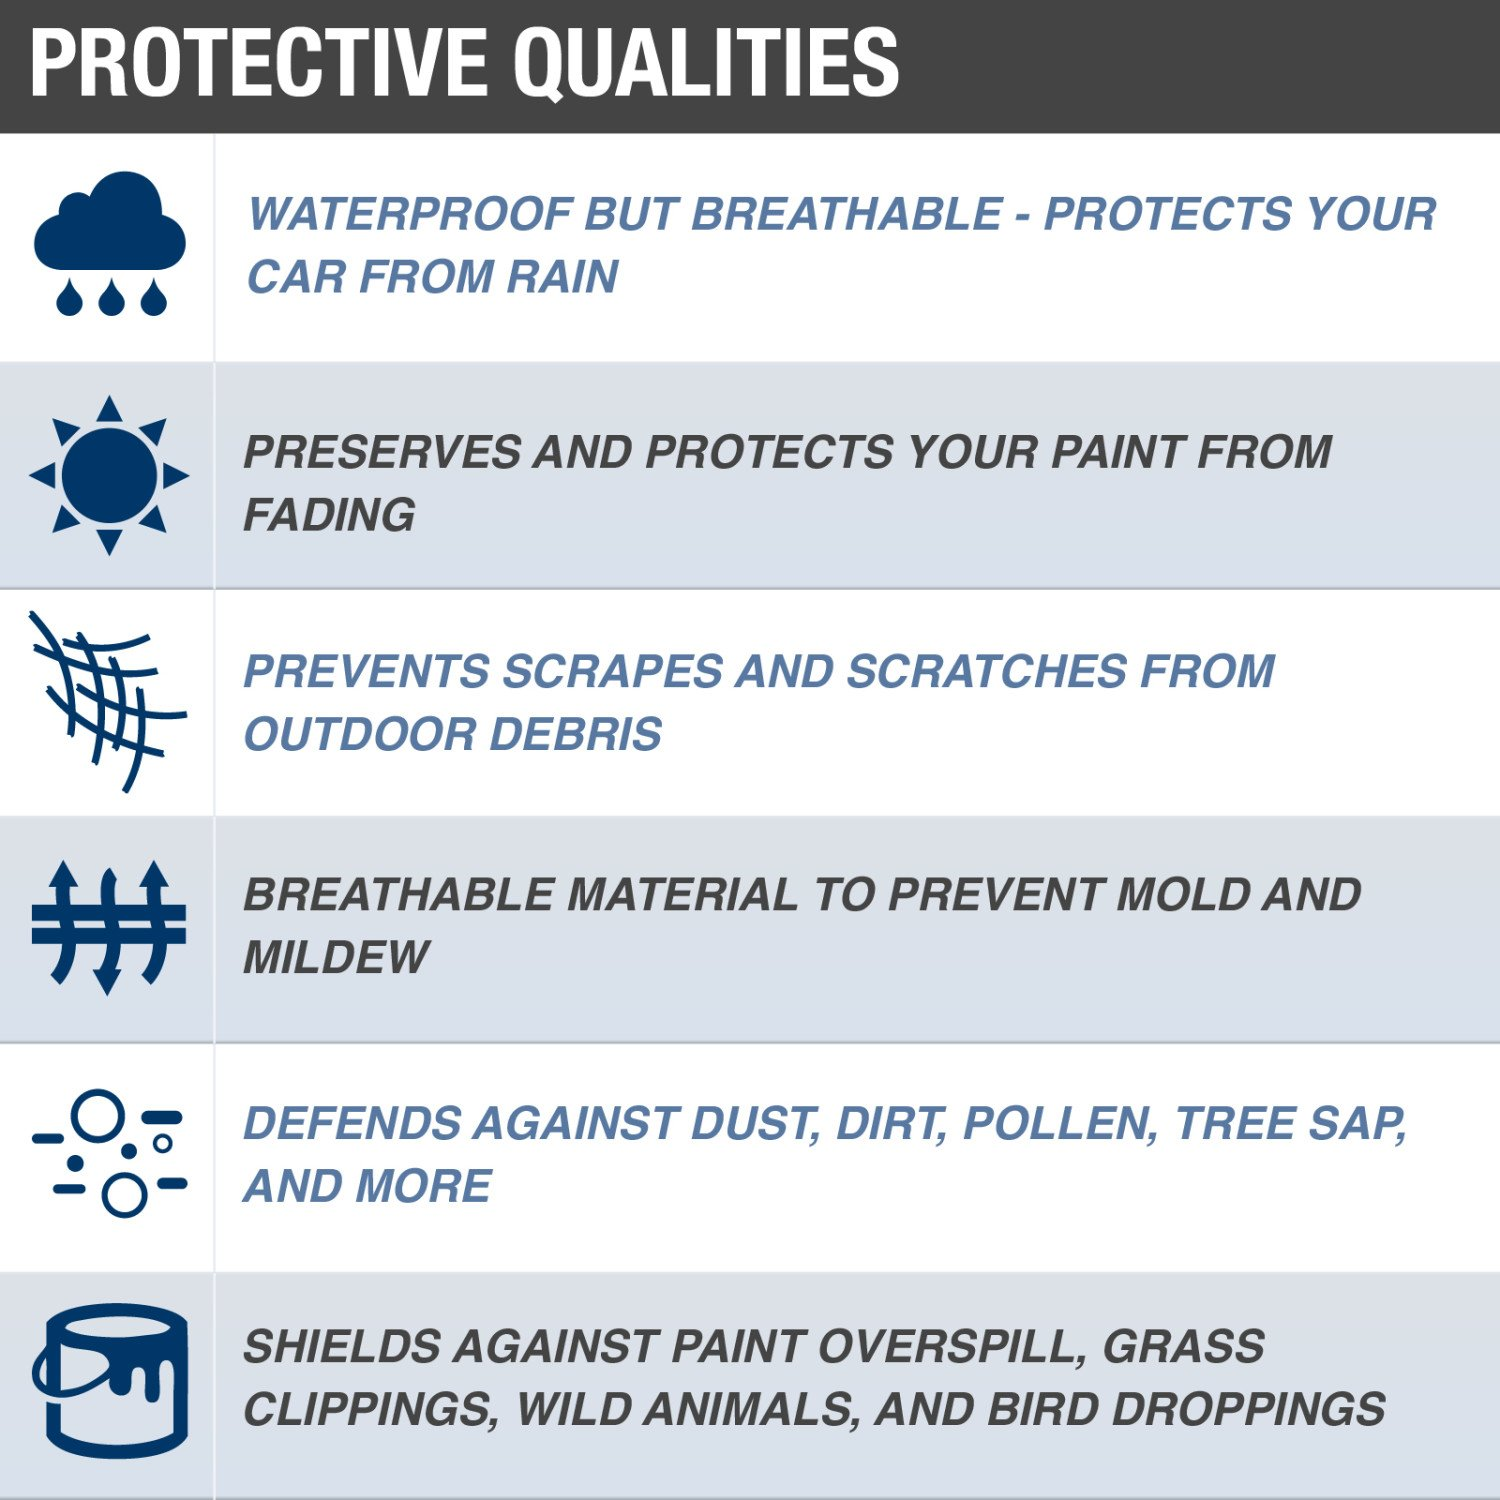 Budge Rain Barrier Car Cover Fits Sedans up to 19 Long Breathable Waterproof